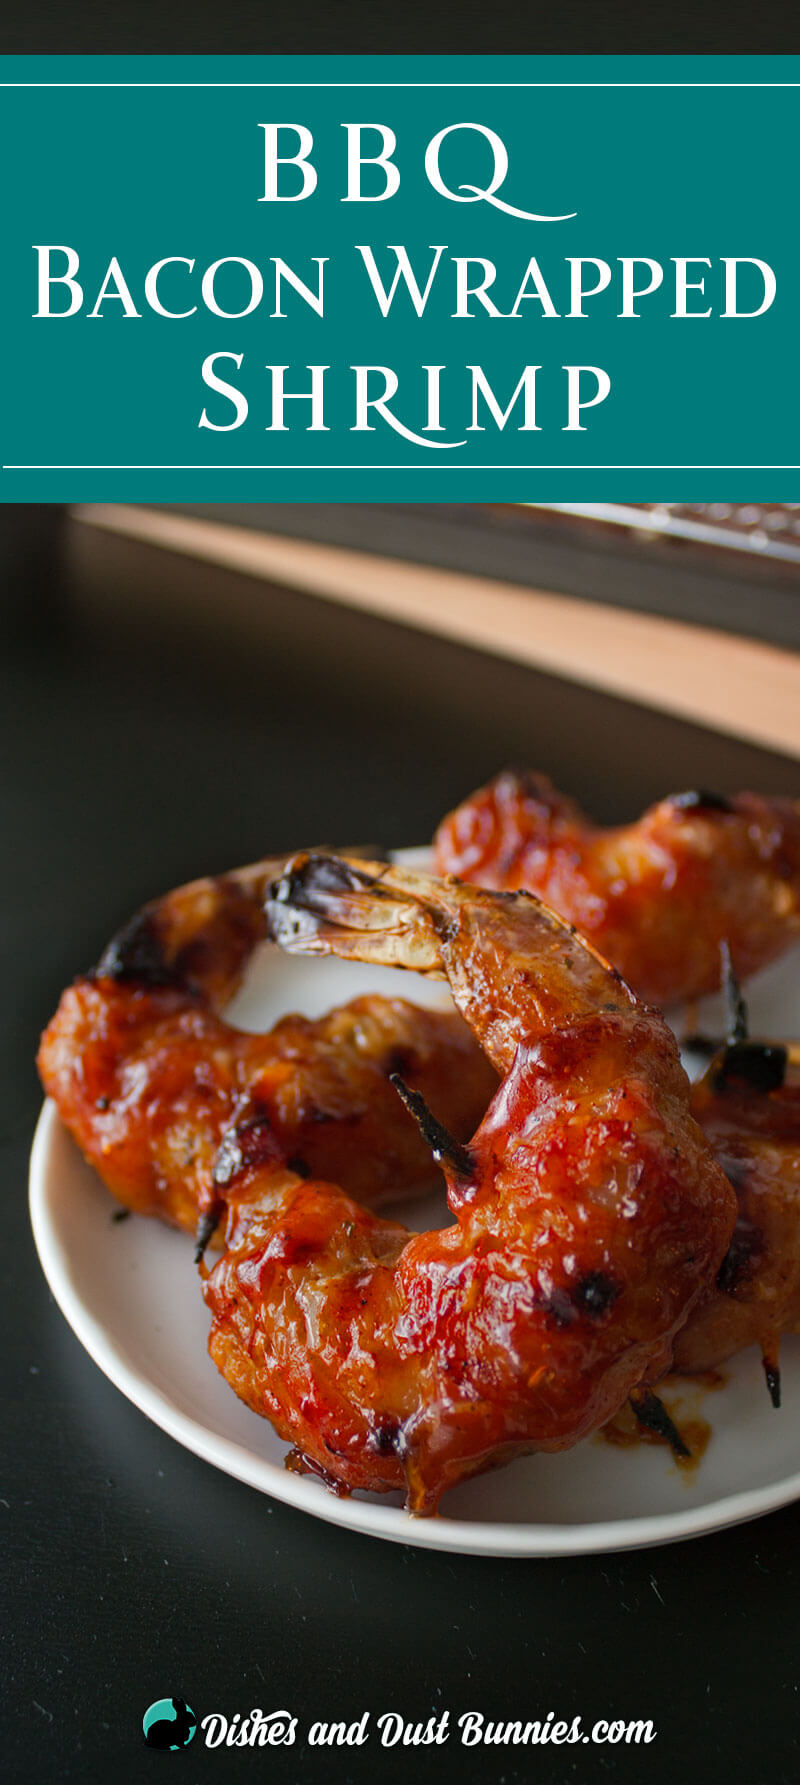 BBQ Bacon Wrapped Shrimp from dishesanddustbunnies.com